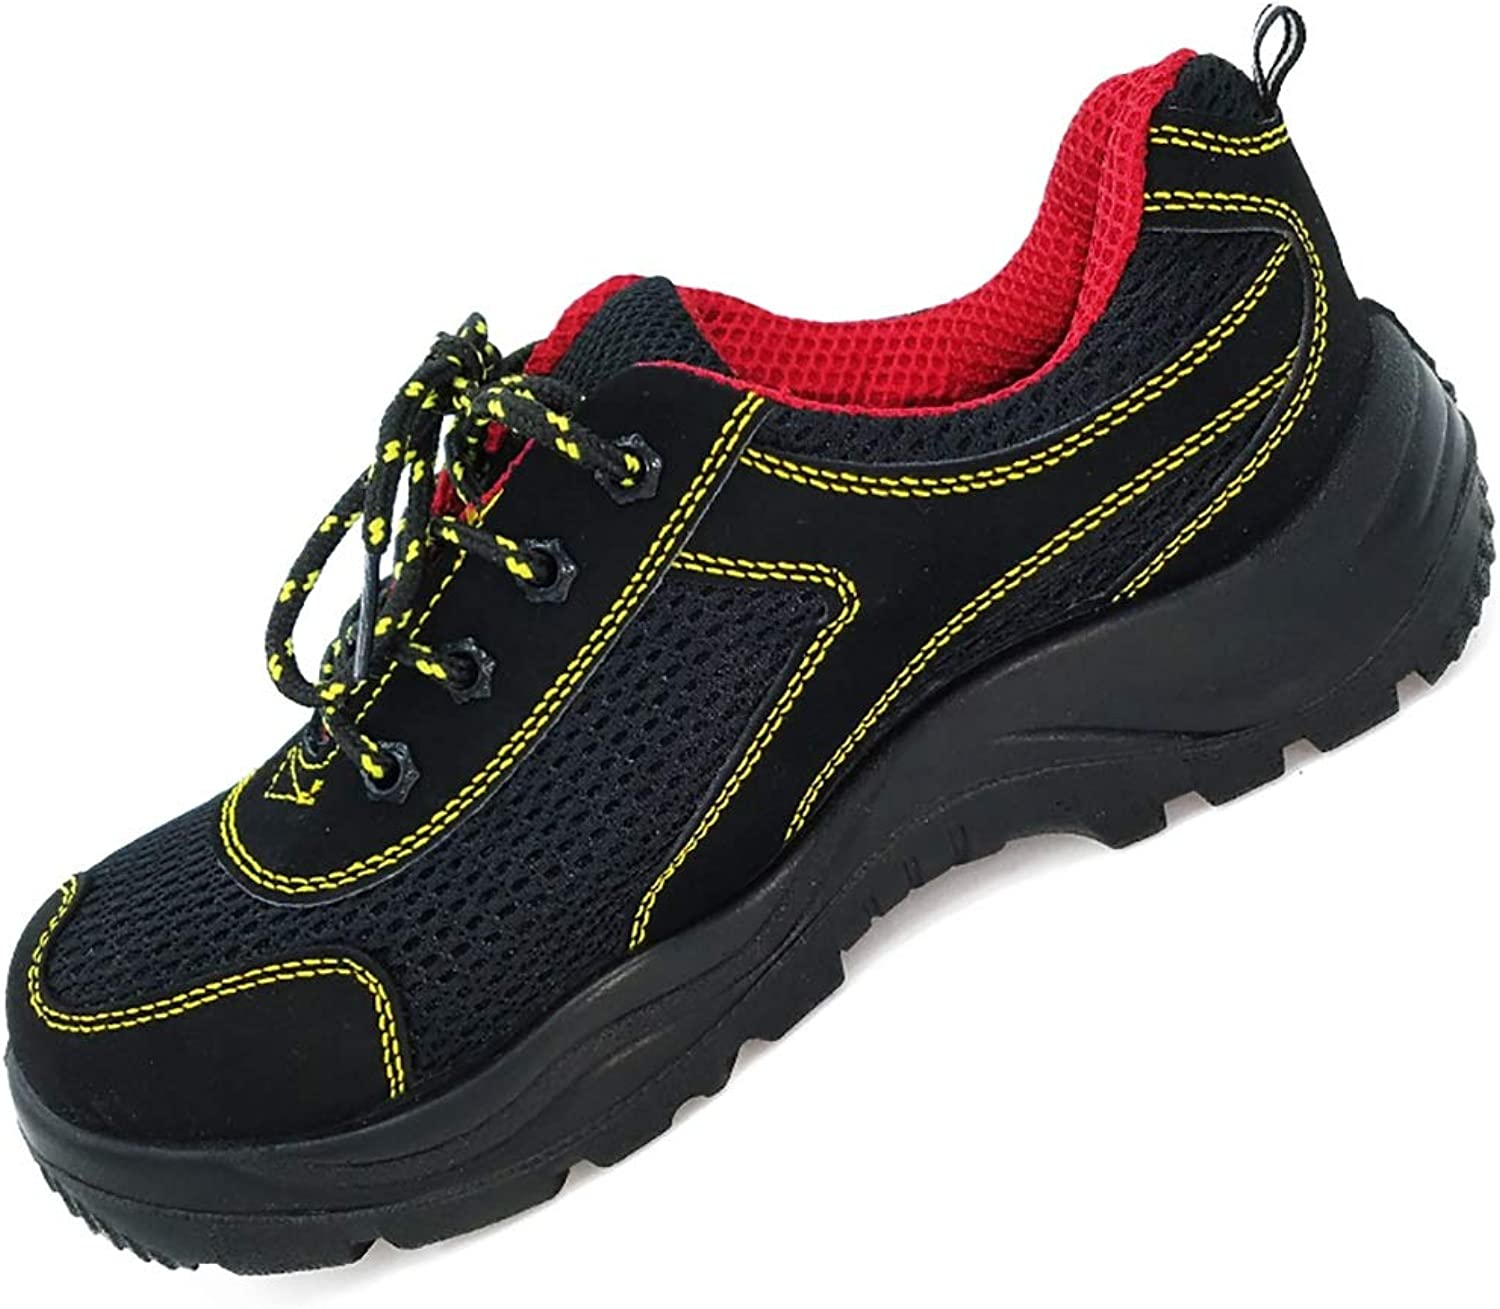 Yxwxz Gym wear for men Men's low waist hiking shoes, waterproof and breathable hiking shoes, non-slip lightweight shoes, outdoor climbing and running on cloud running shoes (Size   40)